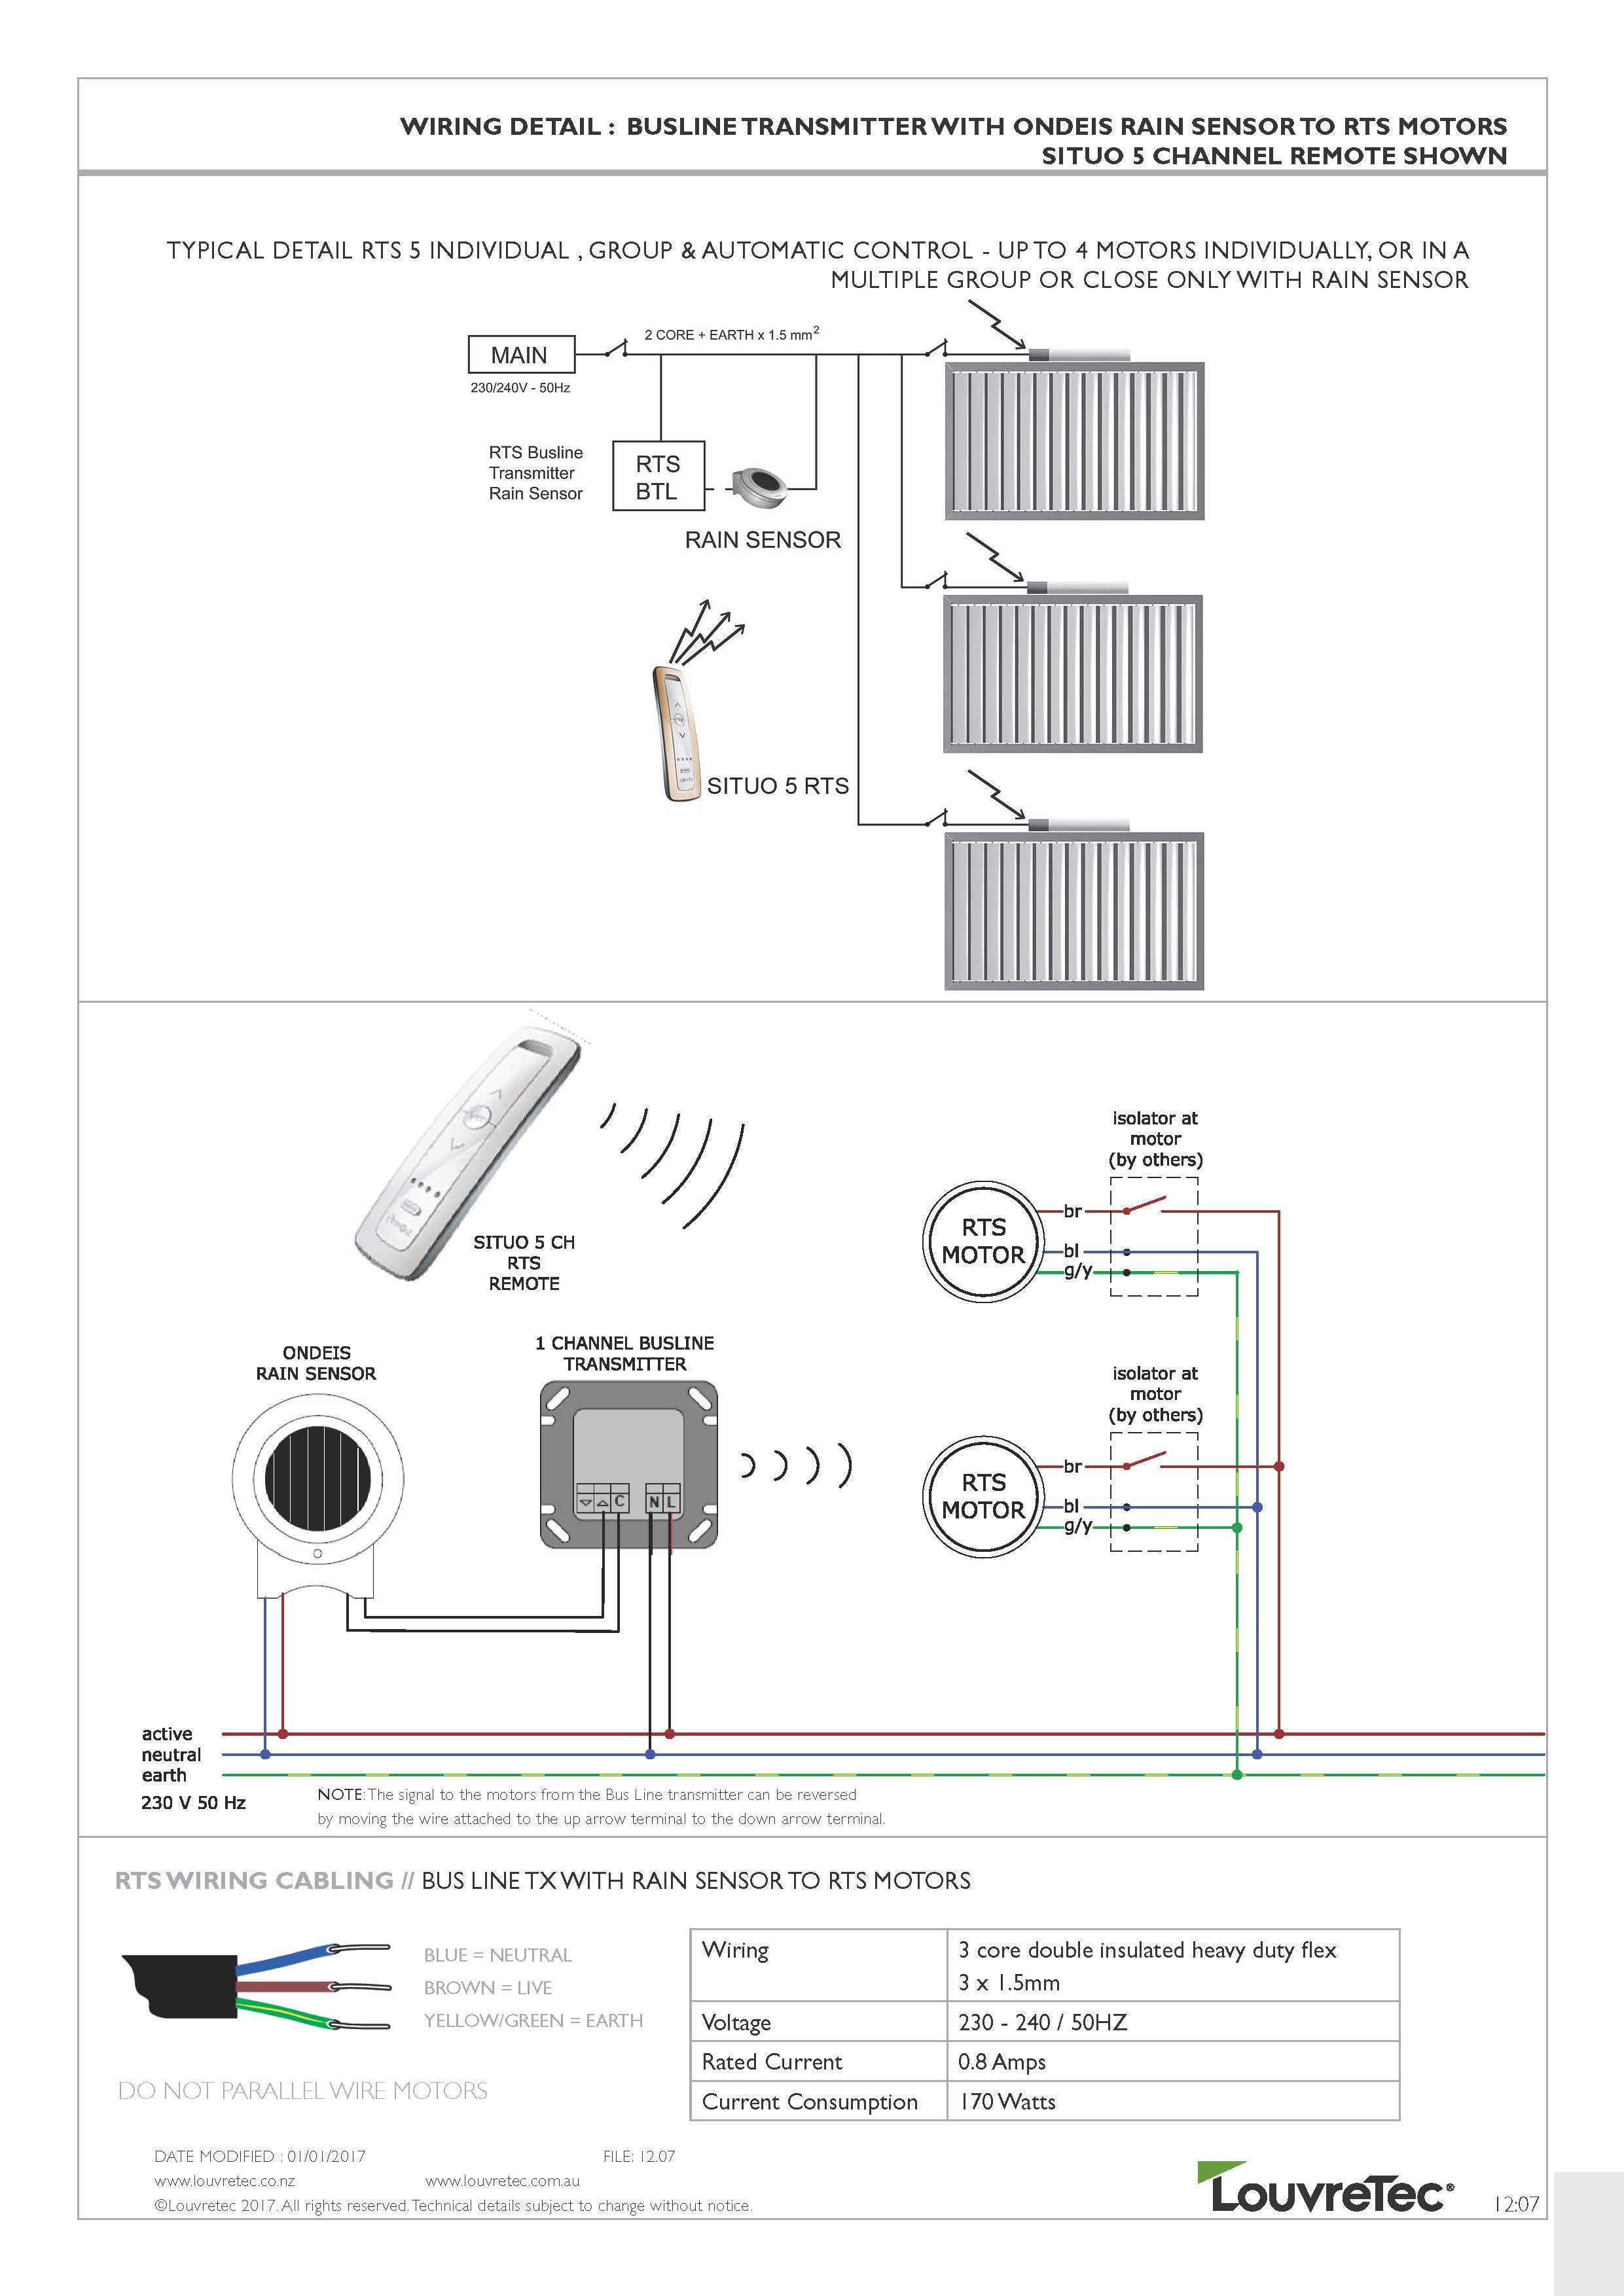 somfy rts wiring diagram schematics wiring diagrams \u2022 rs232 usb firewire and infrared diagram rts wiring diagram enthusiast wiring diagrams u2022 rh rasalibre co somfy cable tester somfy motors